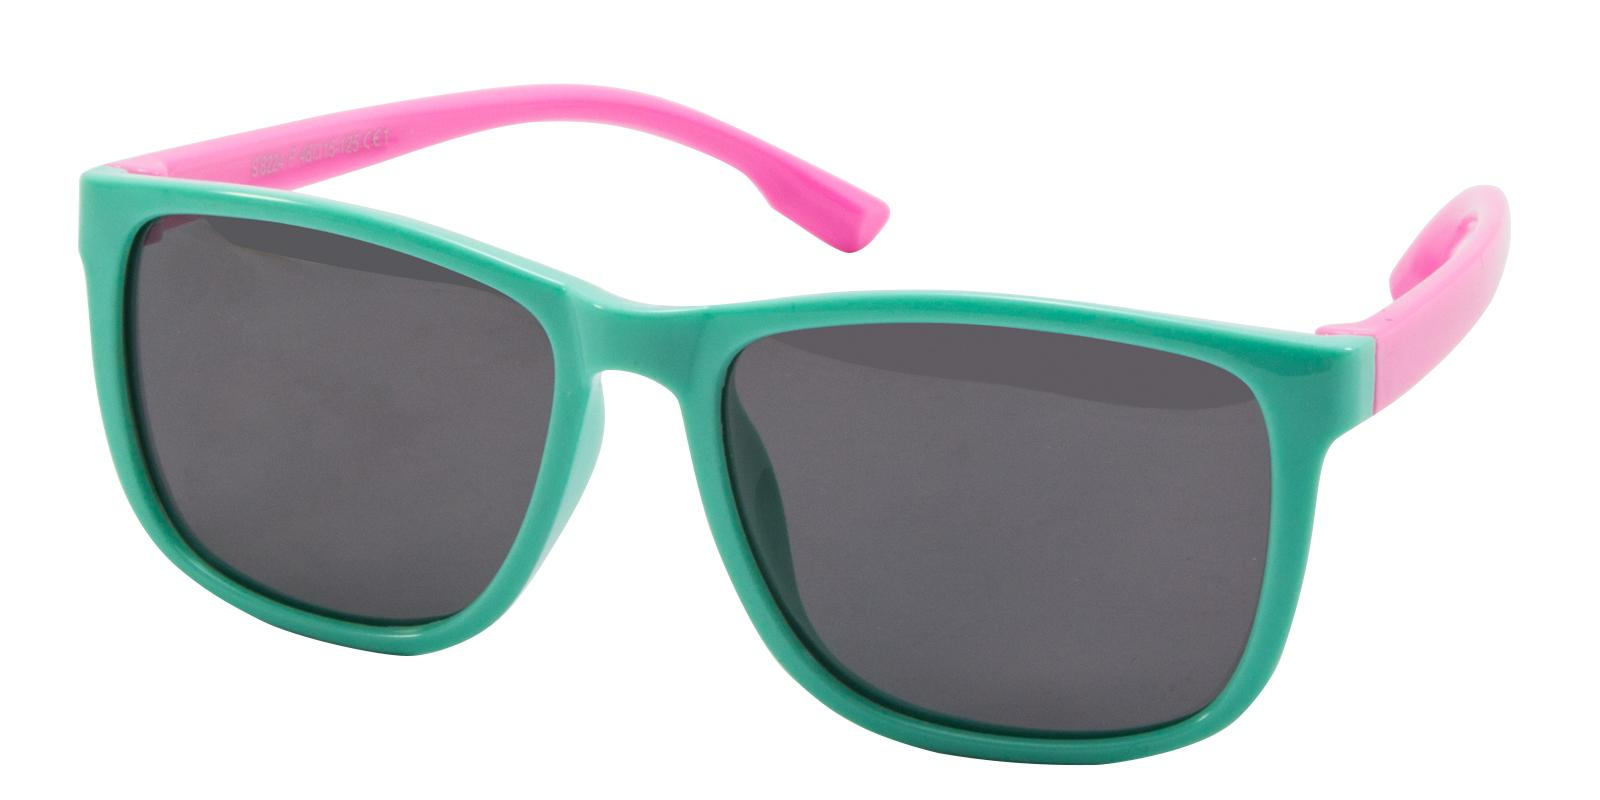 Hyacin Green TR Sunglasses , UniversalBridgeFit Frames from ABBE Glasses